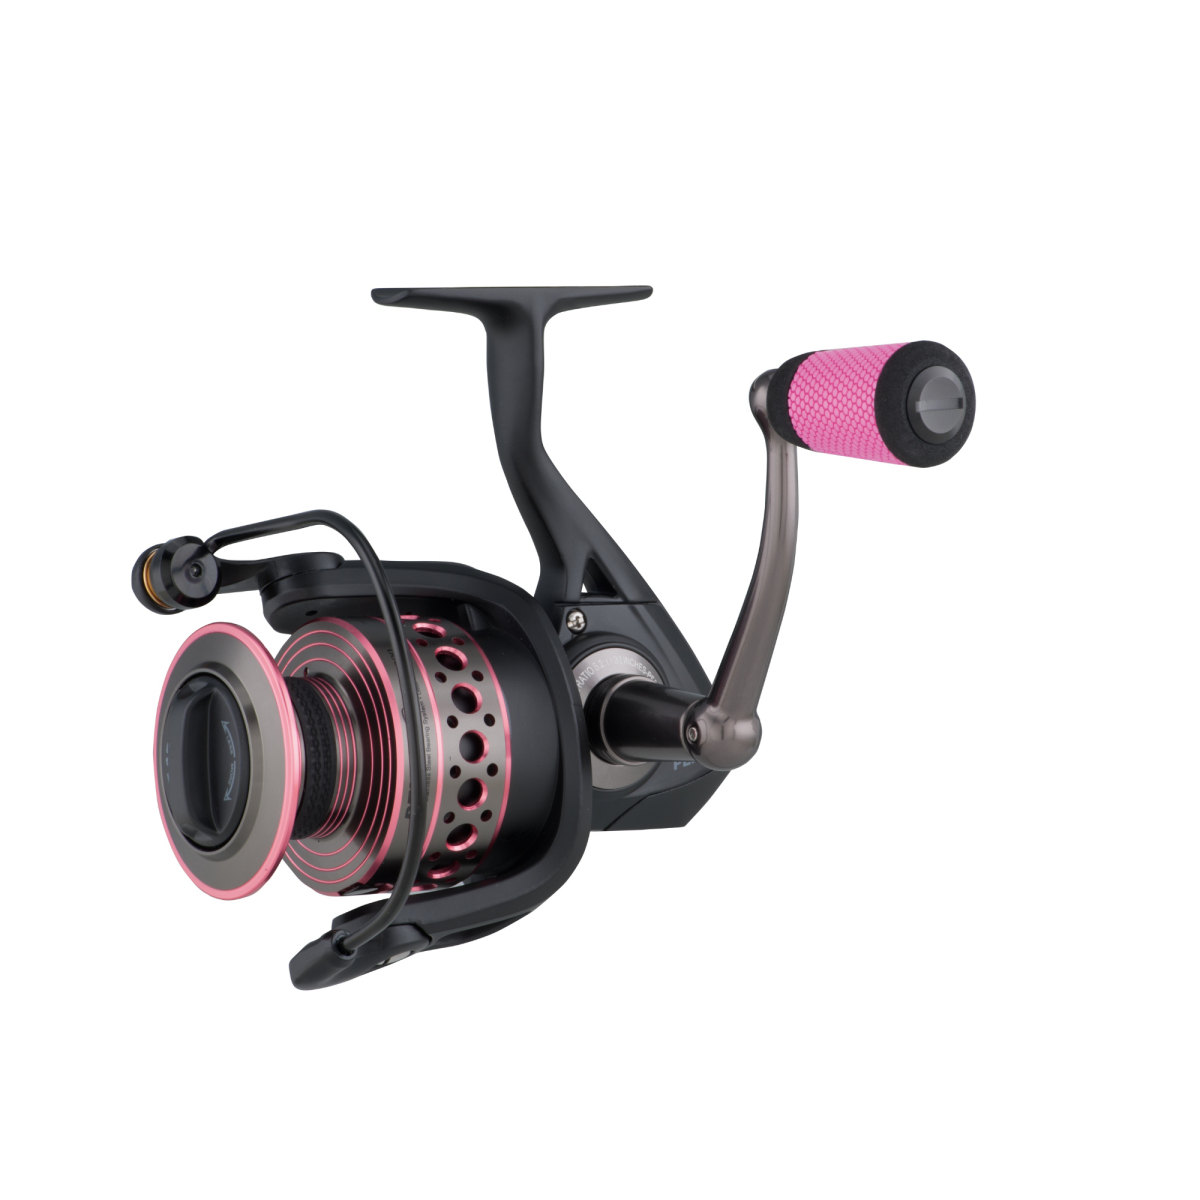 Penn PAS4000 Passion Spinning Reel